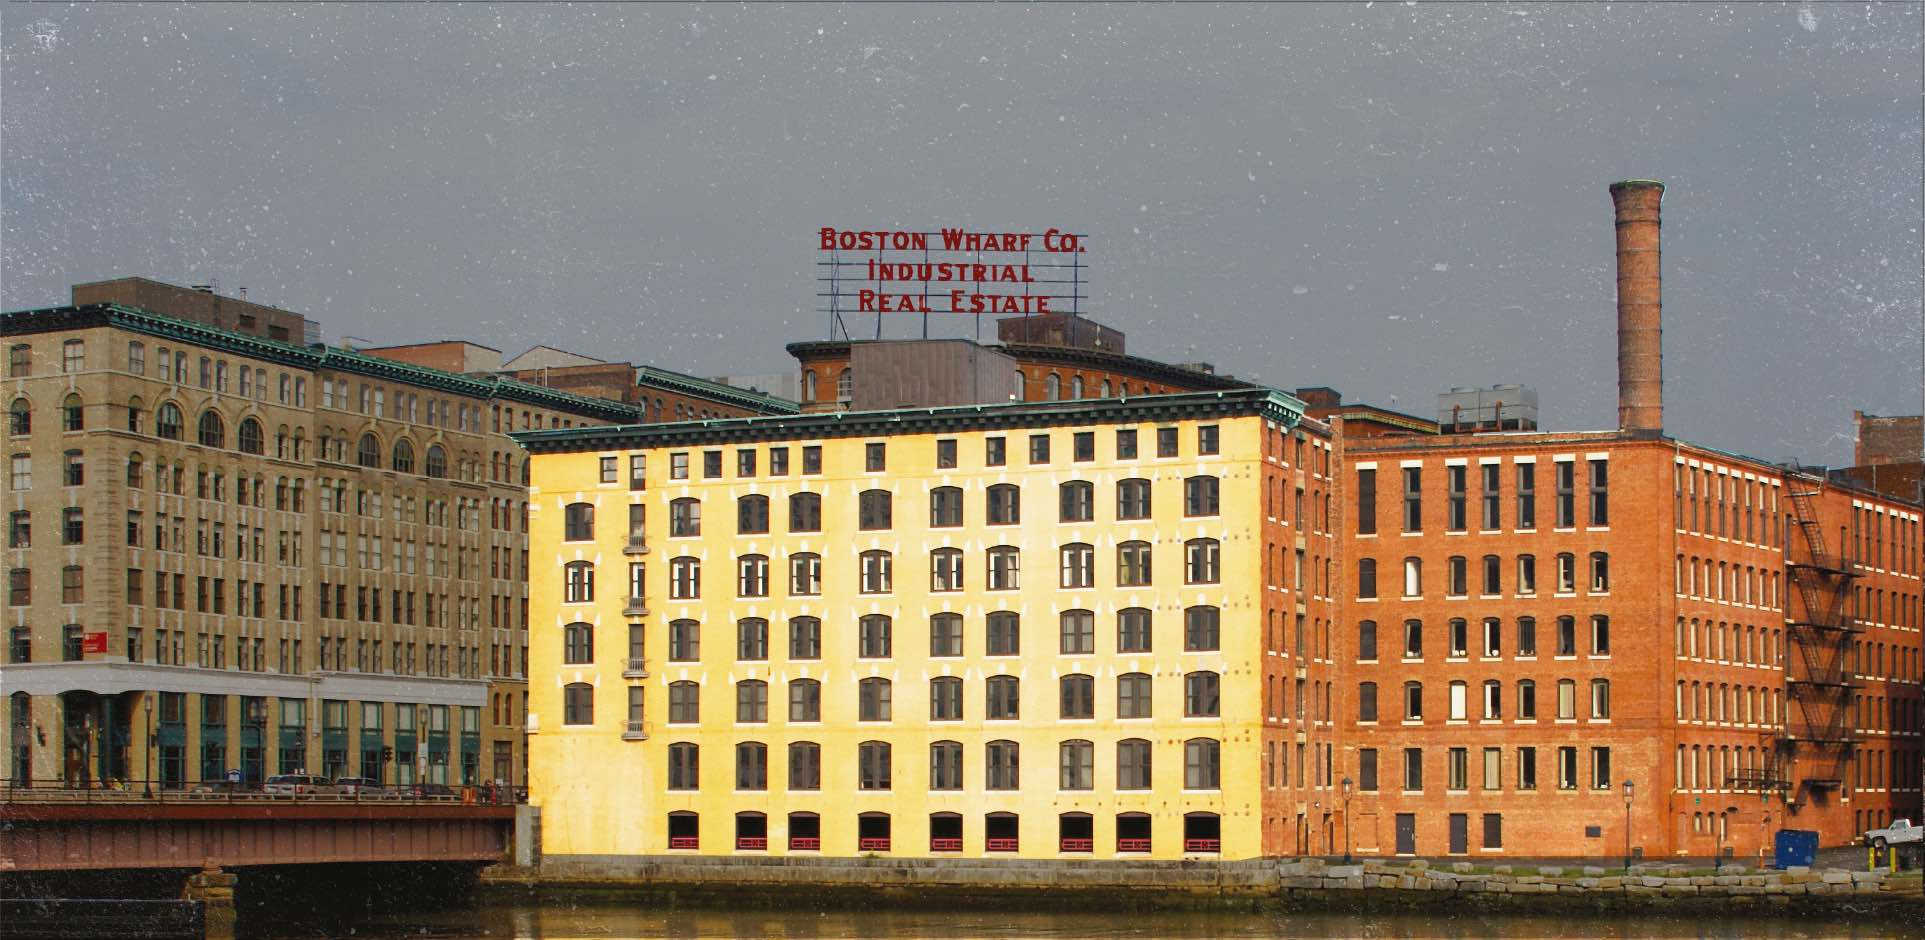 253 summer street fort point seaport district boston amazon office space retail lolita cocina synergy investments